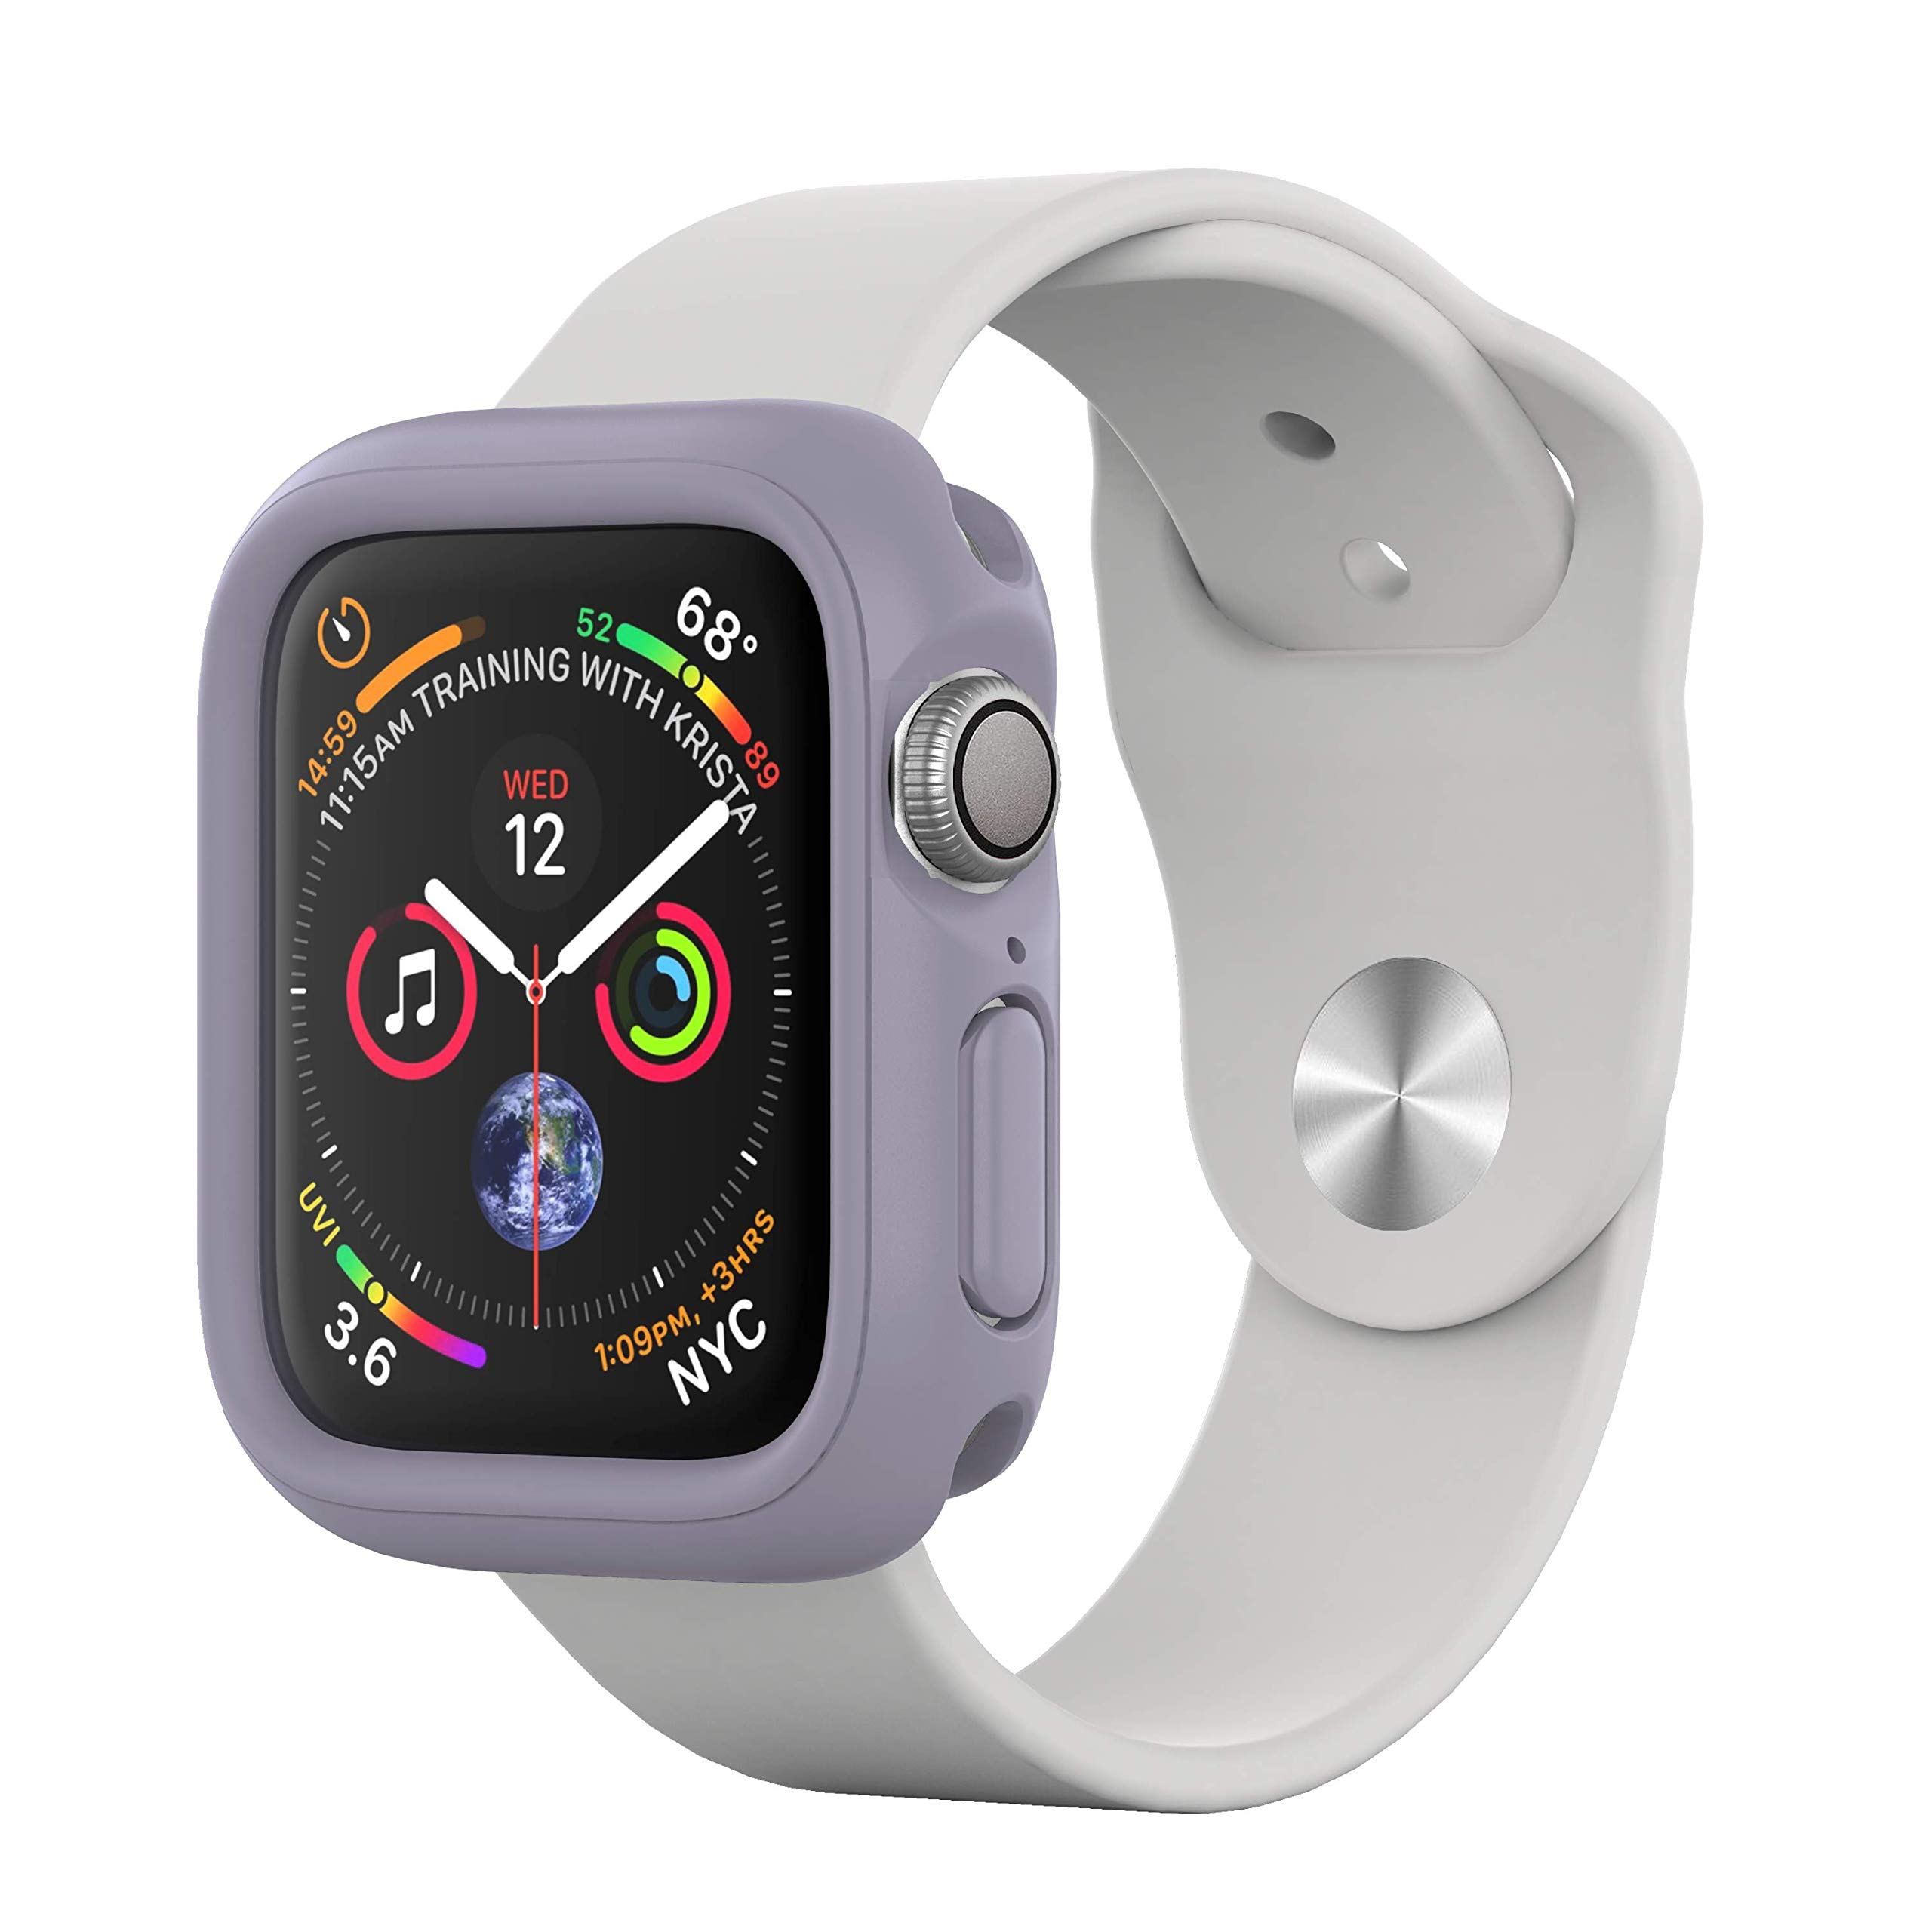 RhinoShield Bumper Case for Apple Watch Series 4 [40mm - NOT 44mm] [CrashGuard NX] | Shock Absorbent Slim Design Protective Cover [1.2M/4ft Drop Protection] - Lavender by RhinoShield